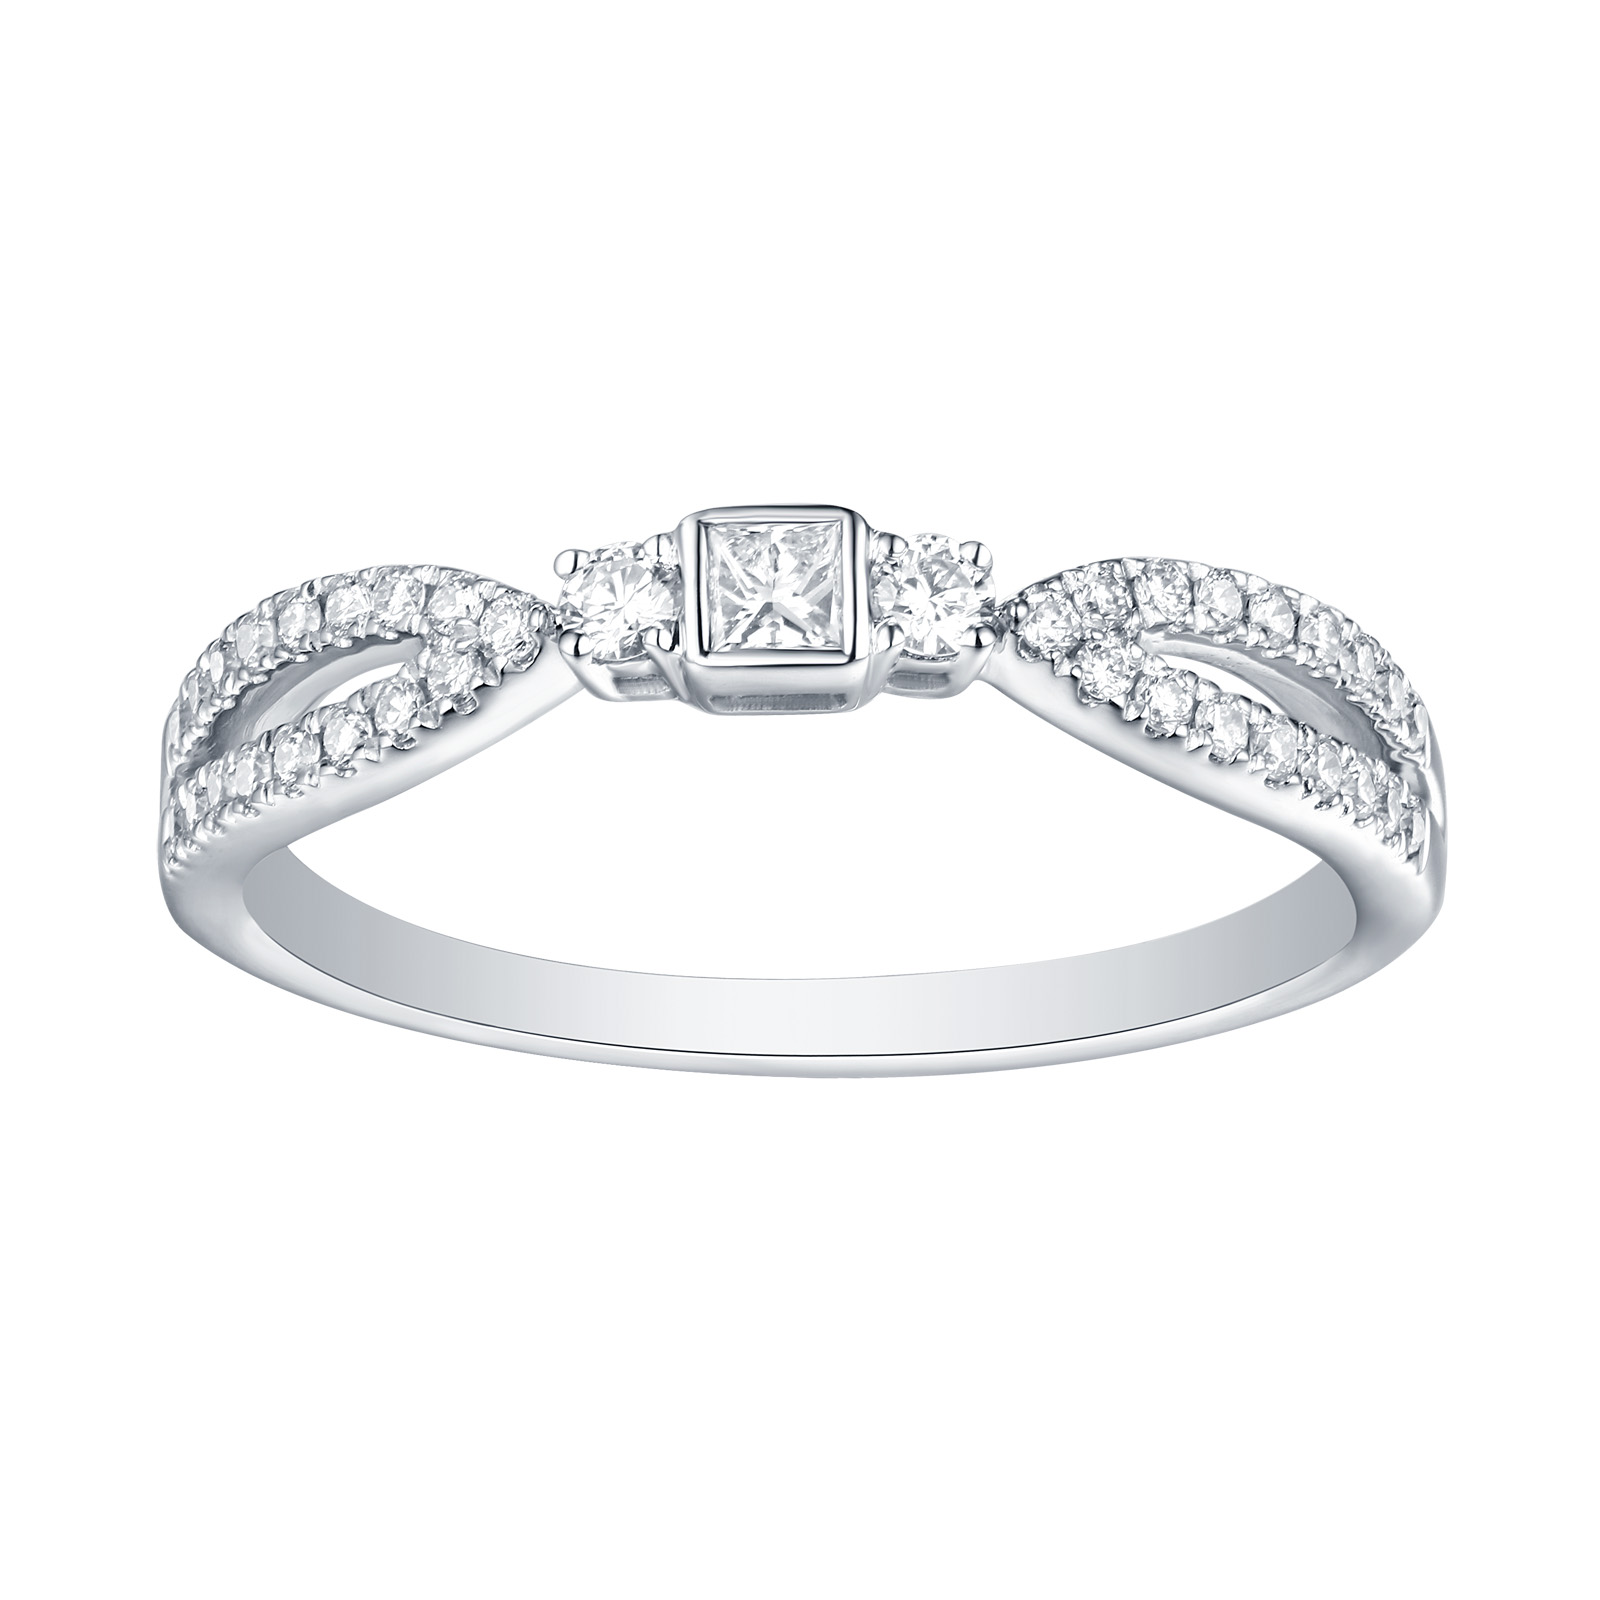 R25912WHT- 14K White Gold Diamond Ring, 0.27 TCW